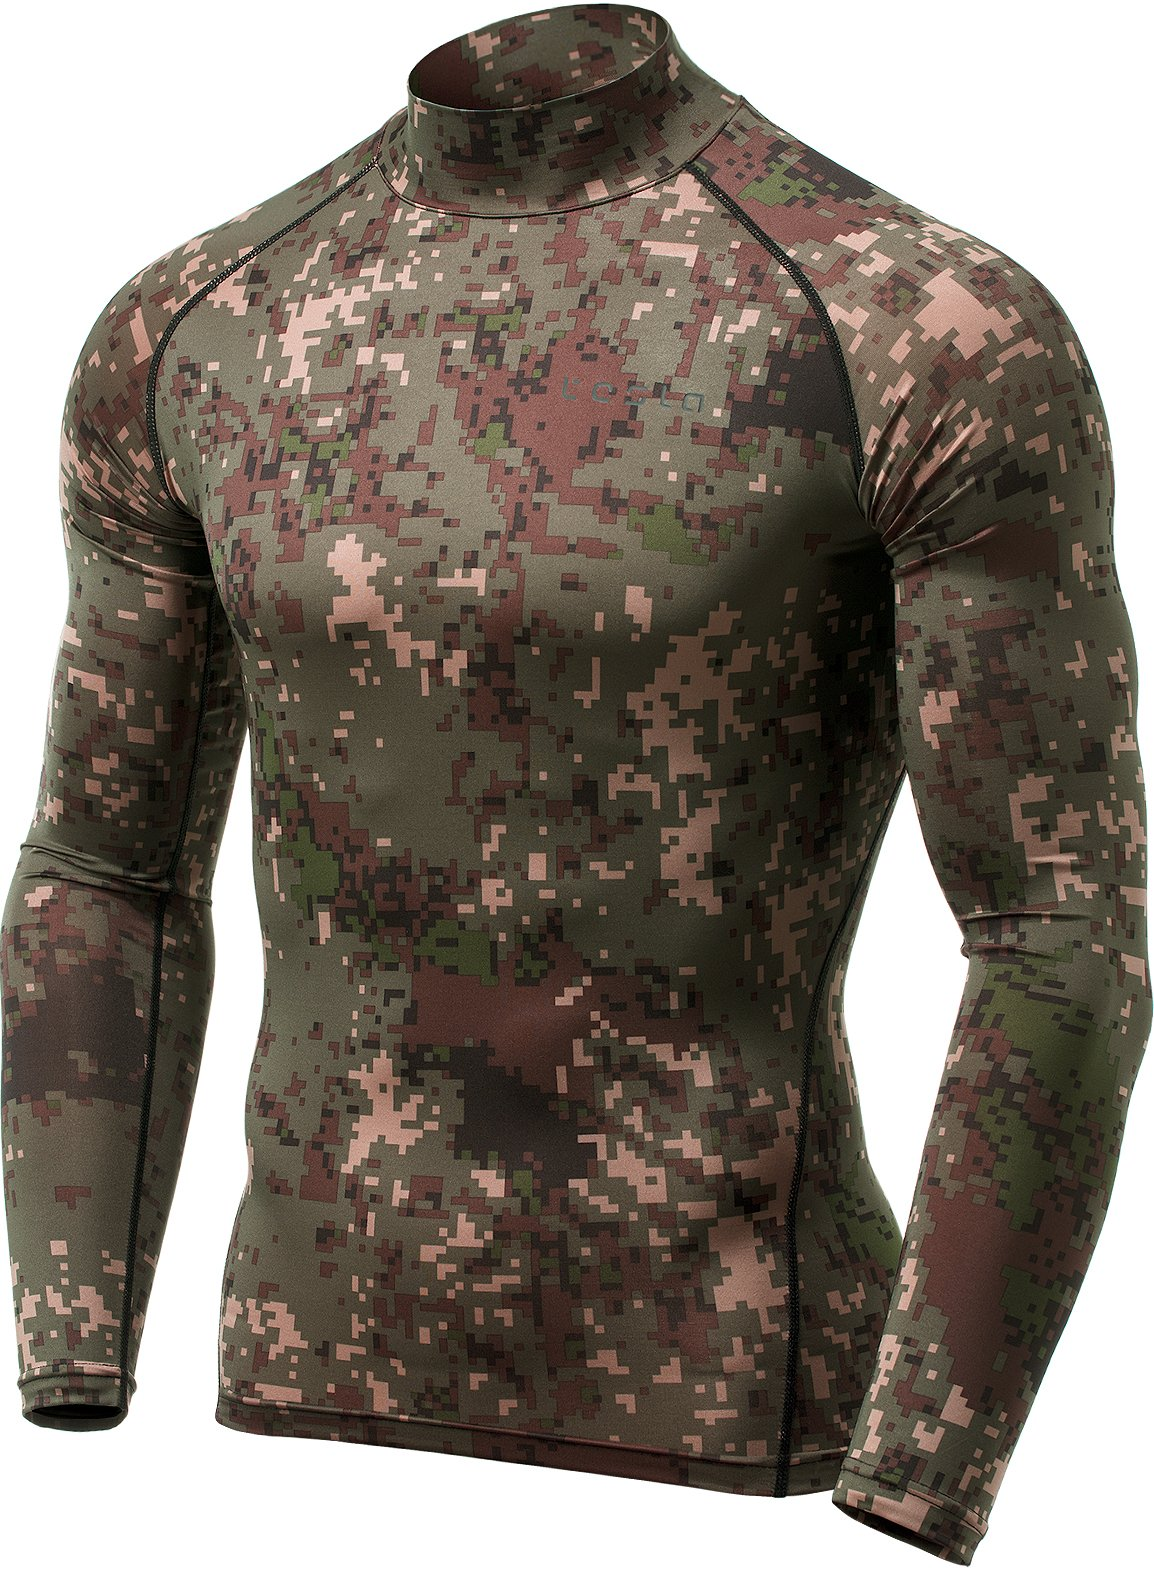 TSLA Men's Thermal Wintergear Compression Baselayer Mock Long Sleeve Shirt, Thermal Mock Neck(yut32) - Pixel Camo Black, Small by TSLA